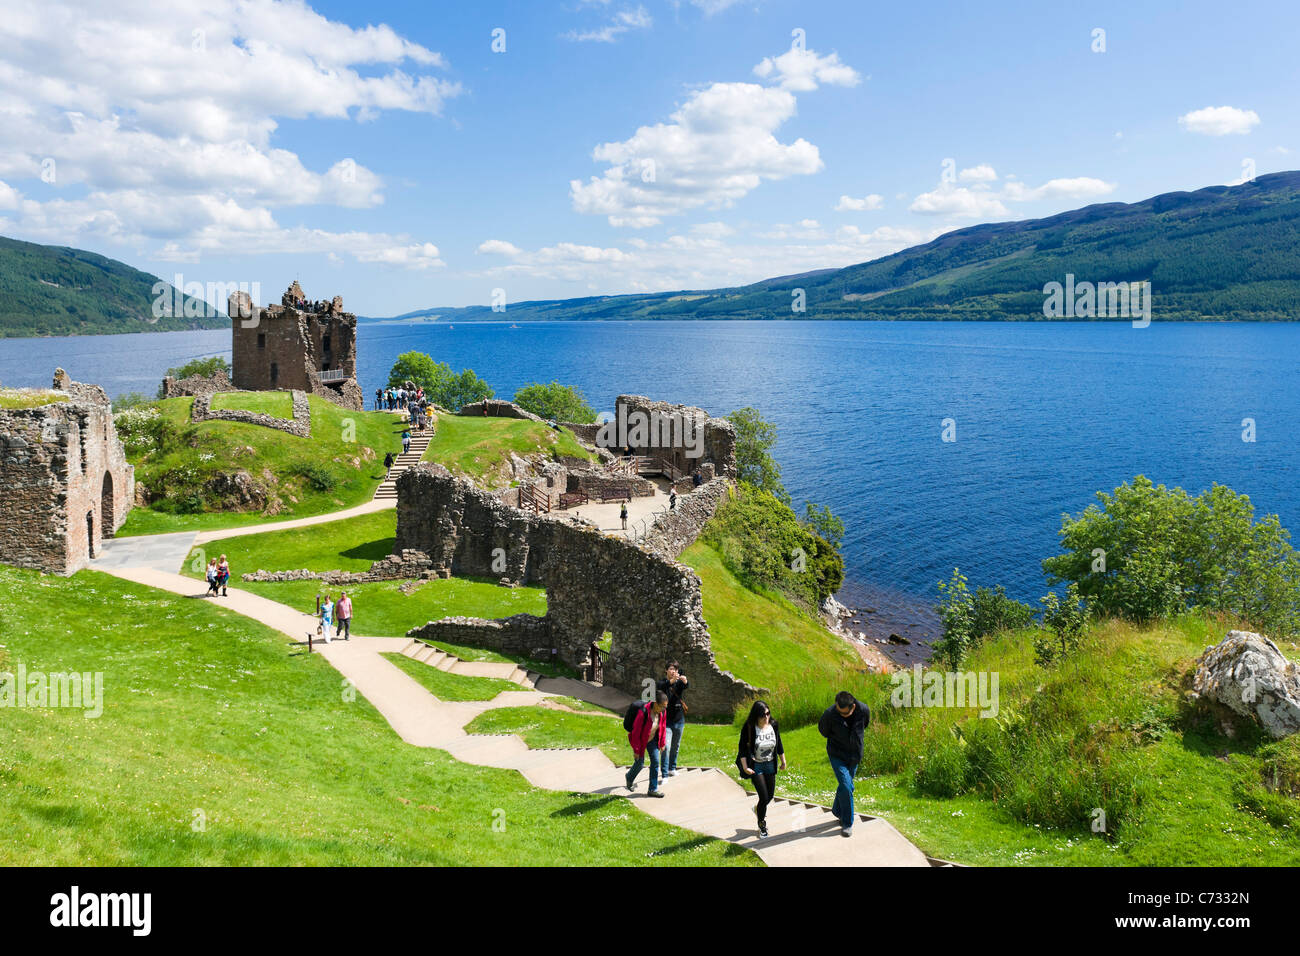 Urquhart Castle on western shore of Loch Ness (site of many Nessie sightings), Drumnadrochit, Scotland, UK. Scottish - Stock Image